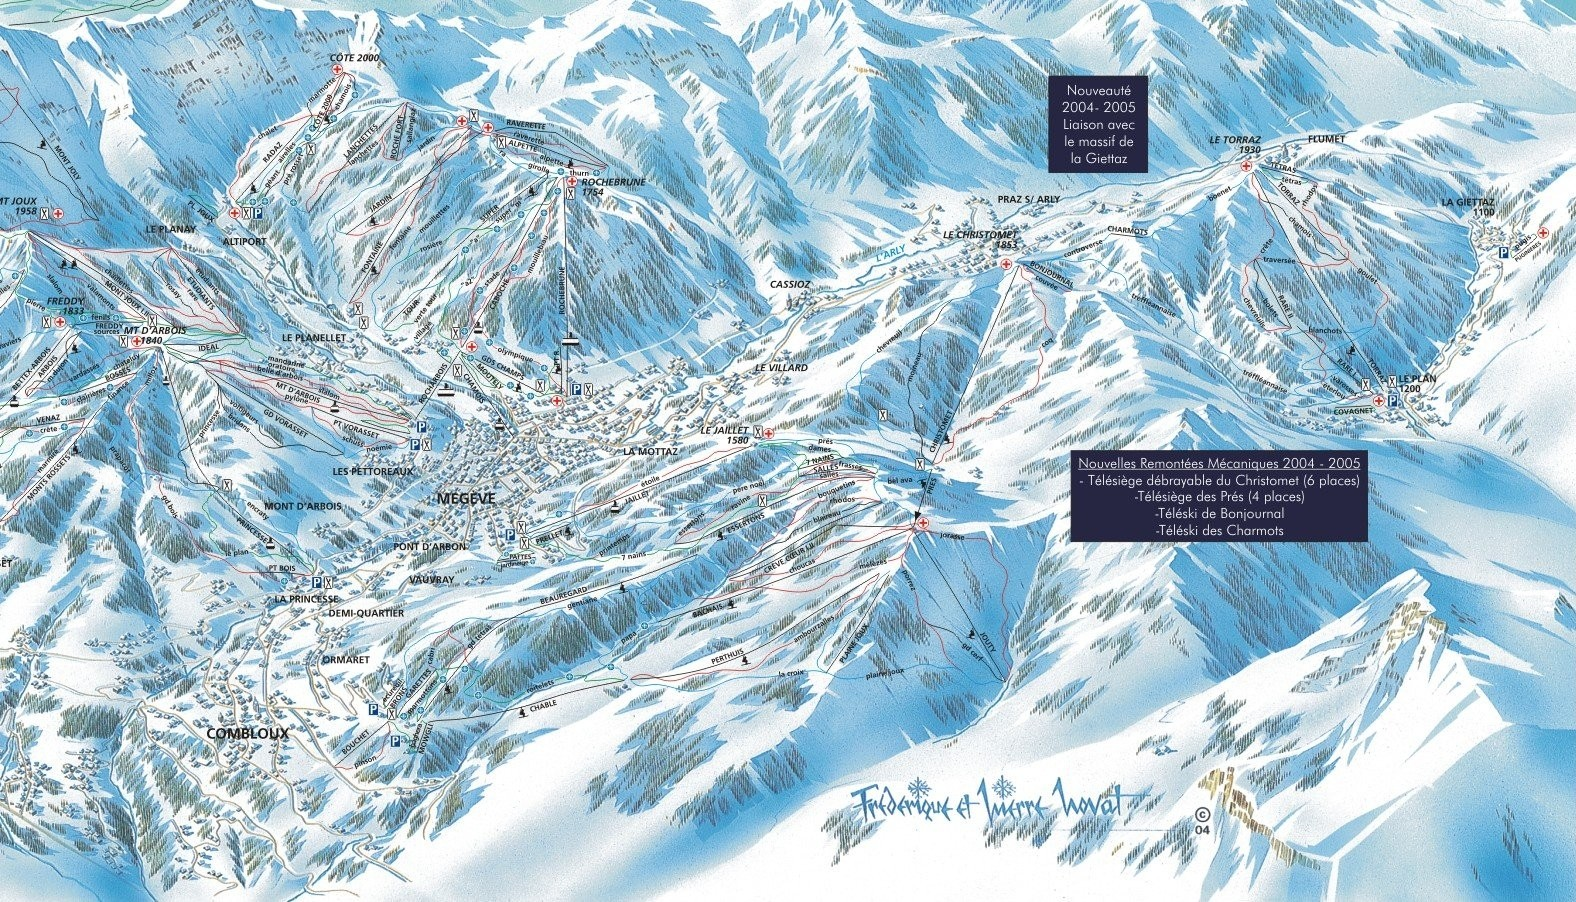 combloux megeve stgervais • ski holiday • reviews • skiing